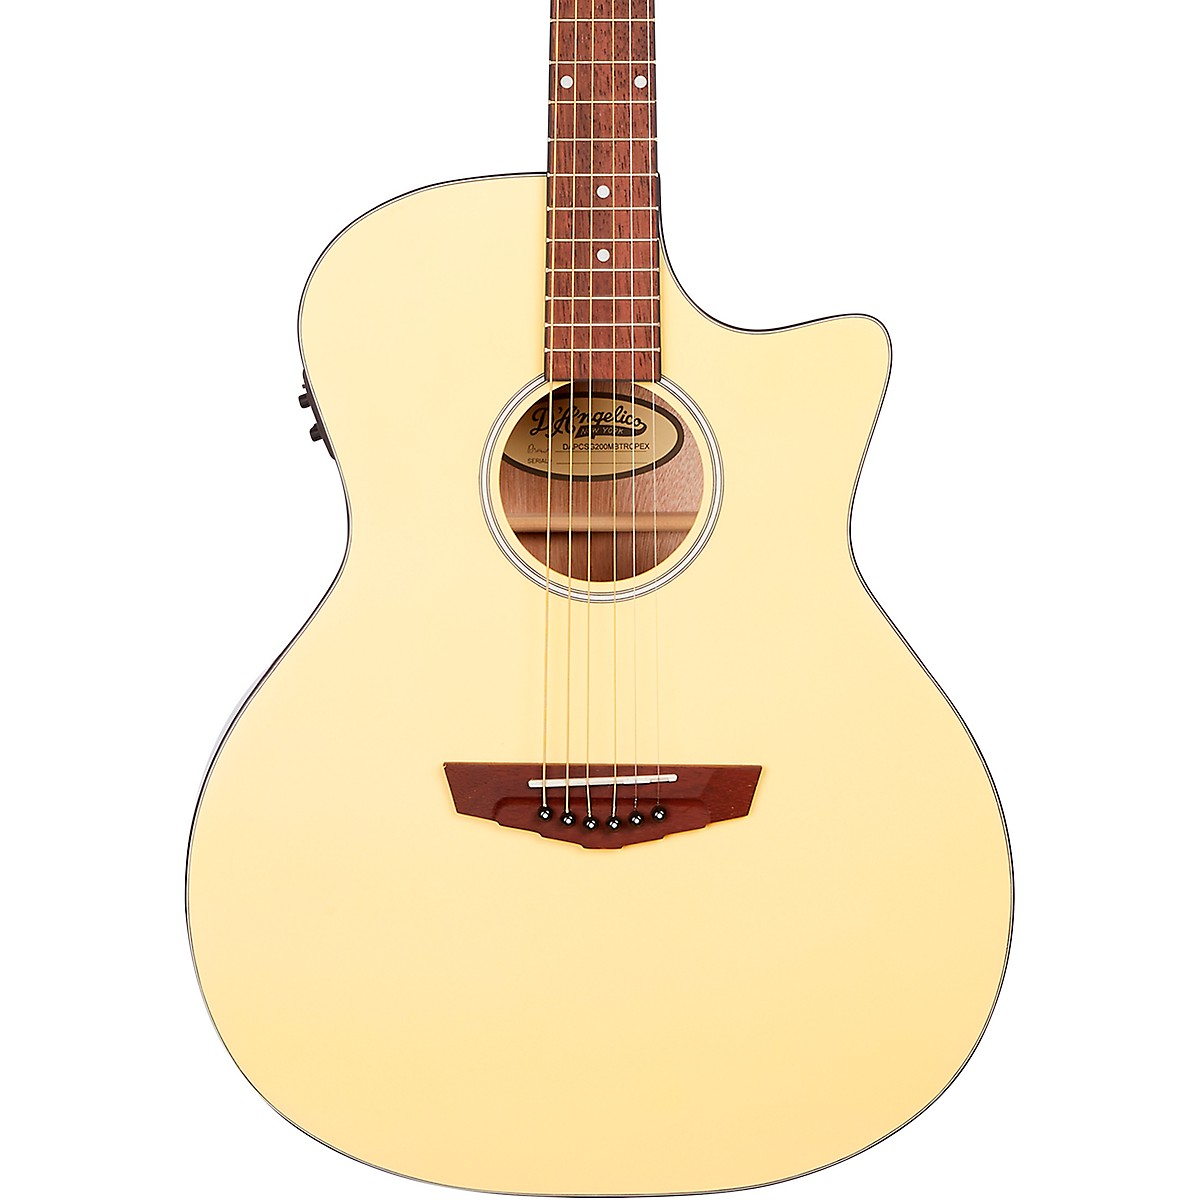 D'Angelico Premier Series Gramercy CS Cutaway Orchestra Acoustic-Electric Guitar